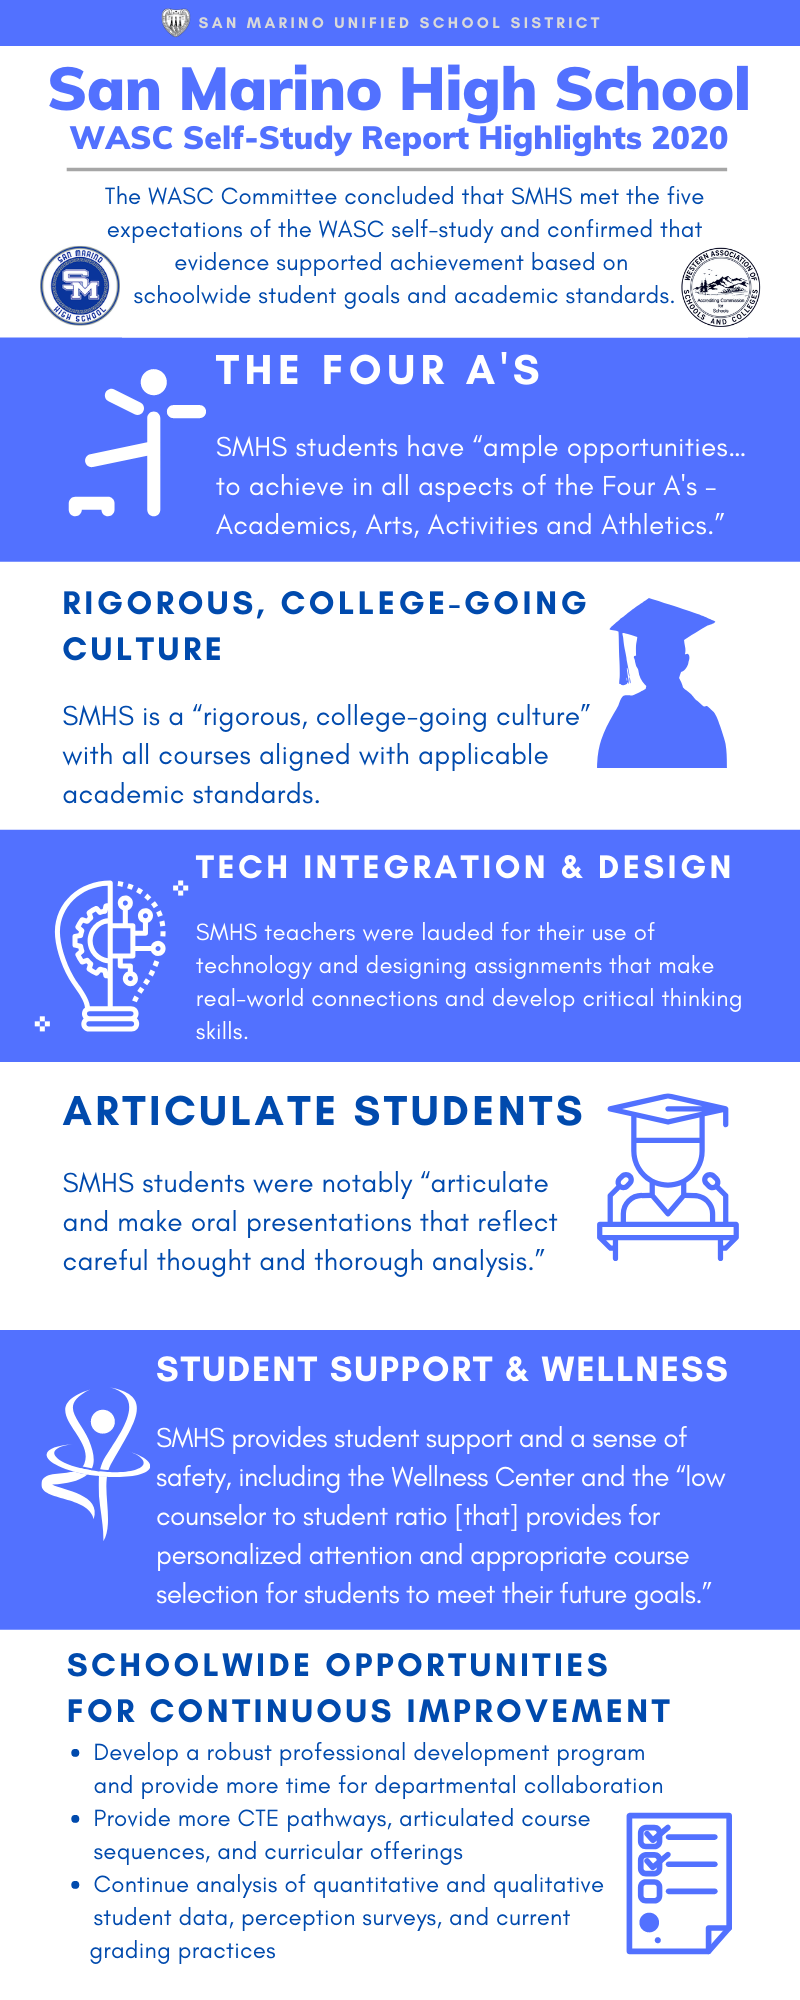 WASC Self-Study Report Infographic